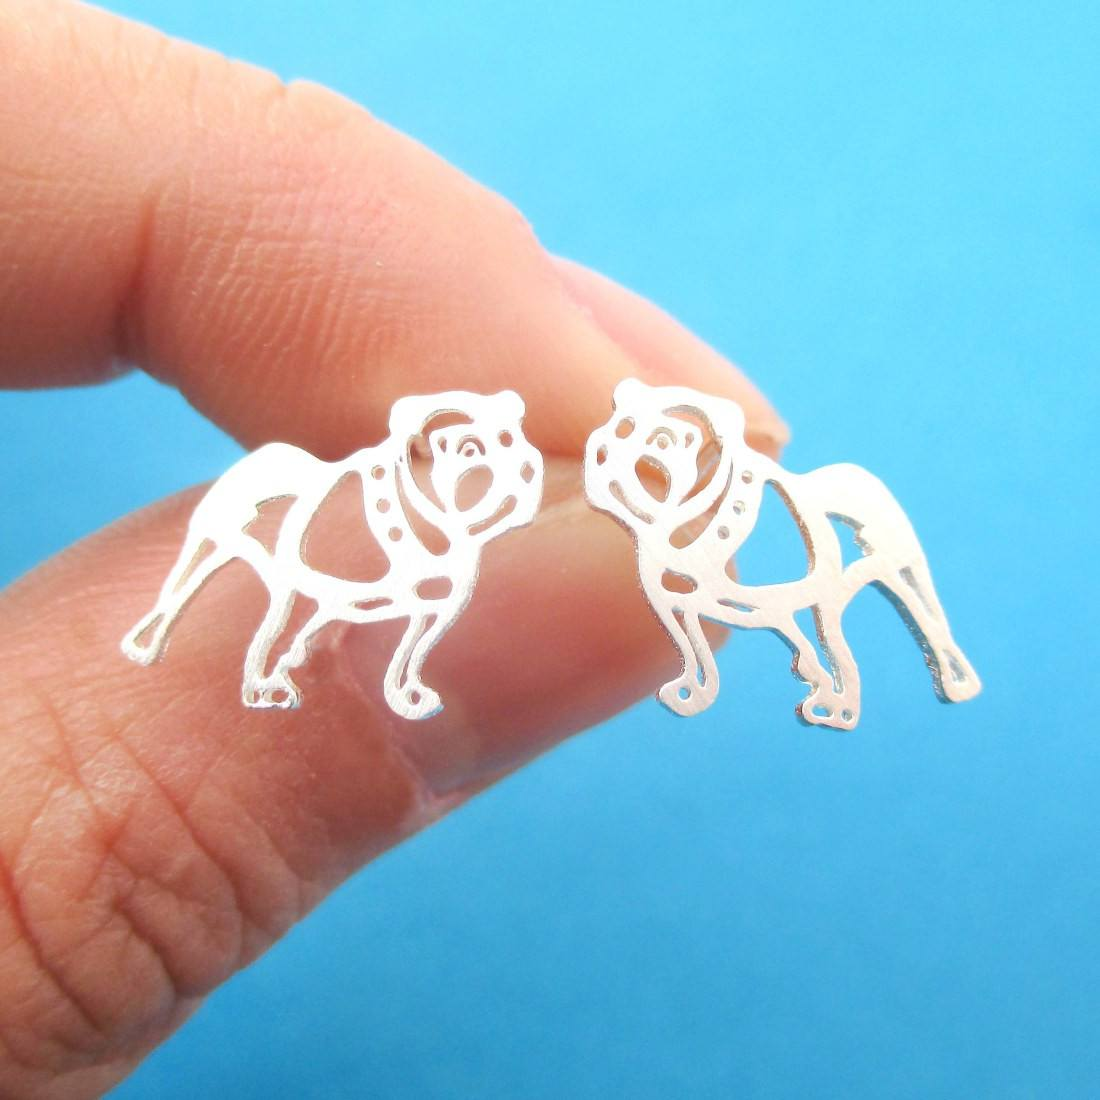 Unique Bulldog Dog Shaped Cut Out Stud Earrings in Silver